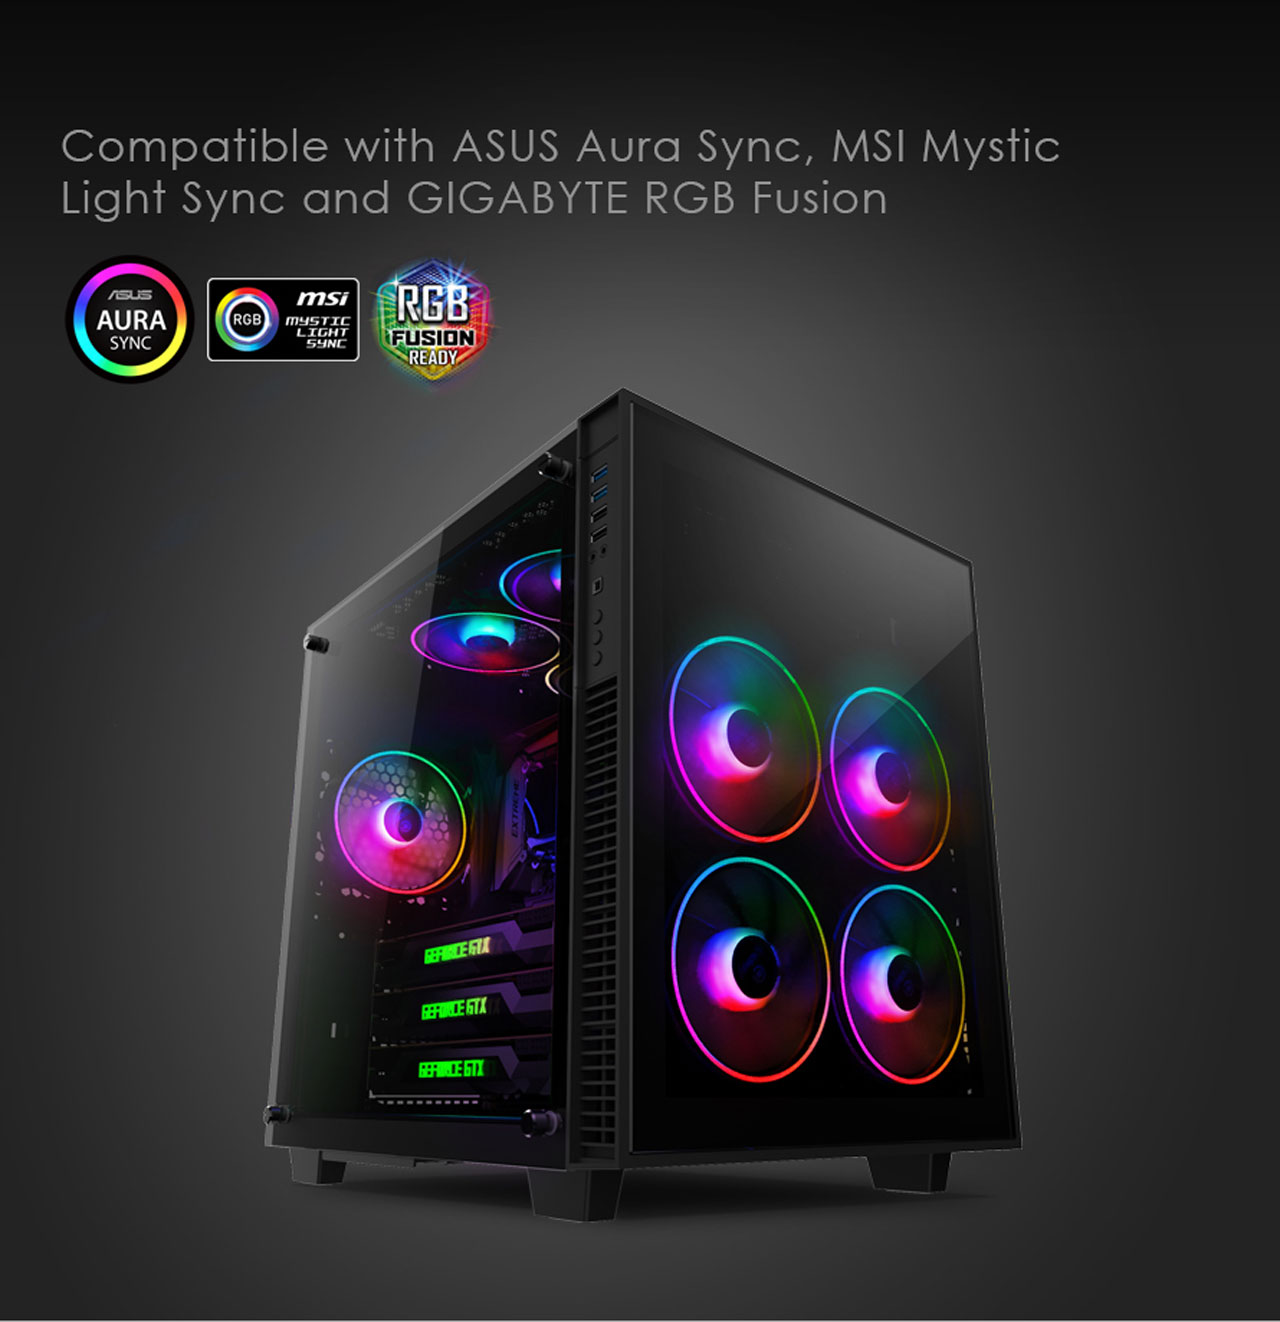 anidees AI Tesseract 120mm 3pcs RGB PWM Fan compatible with ASUS Aura  SYNC/MSI Mystic Sync/GIGABYTE Fusion, controlled by 5V 3pins RGB Header on  MB,